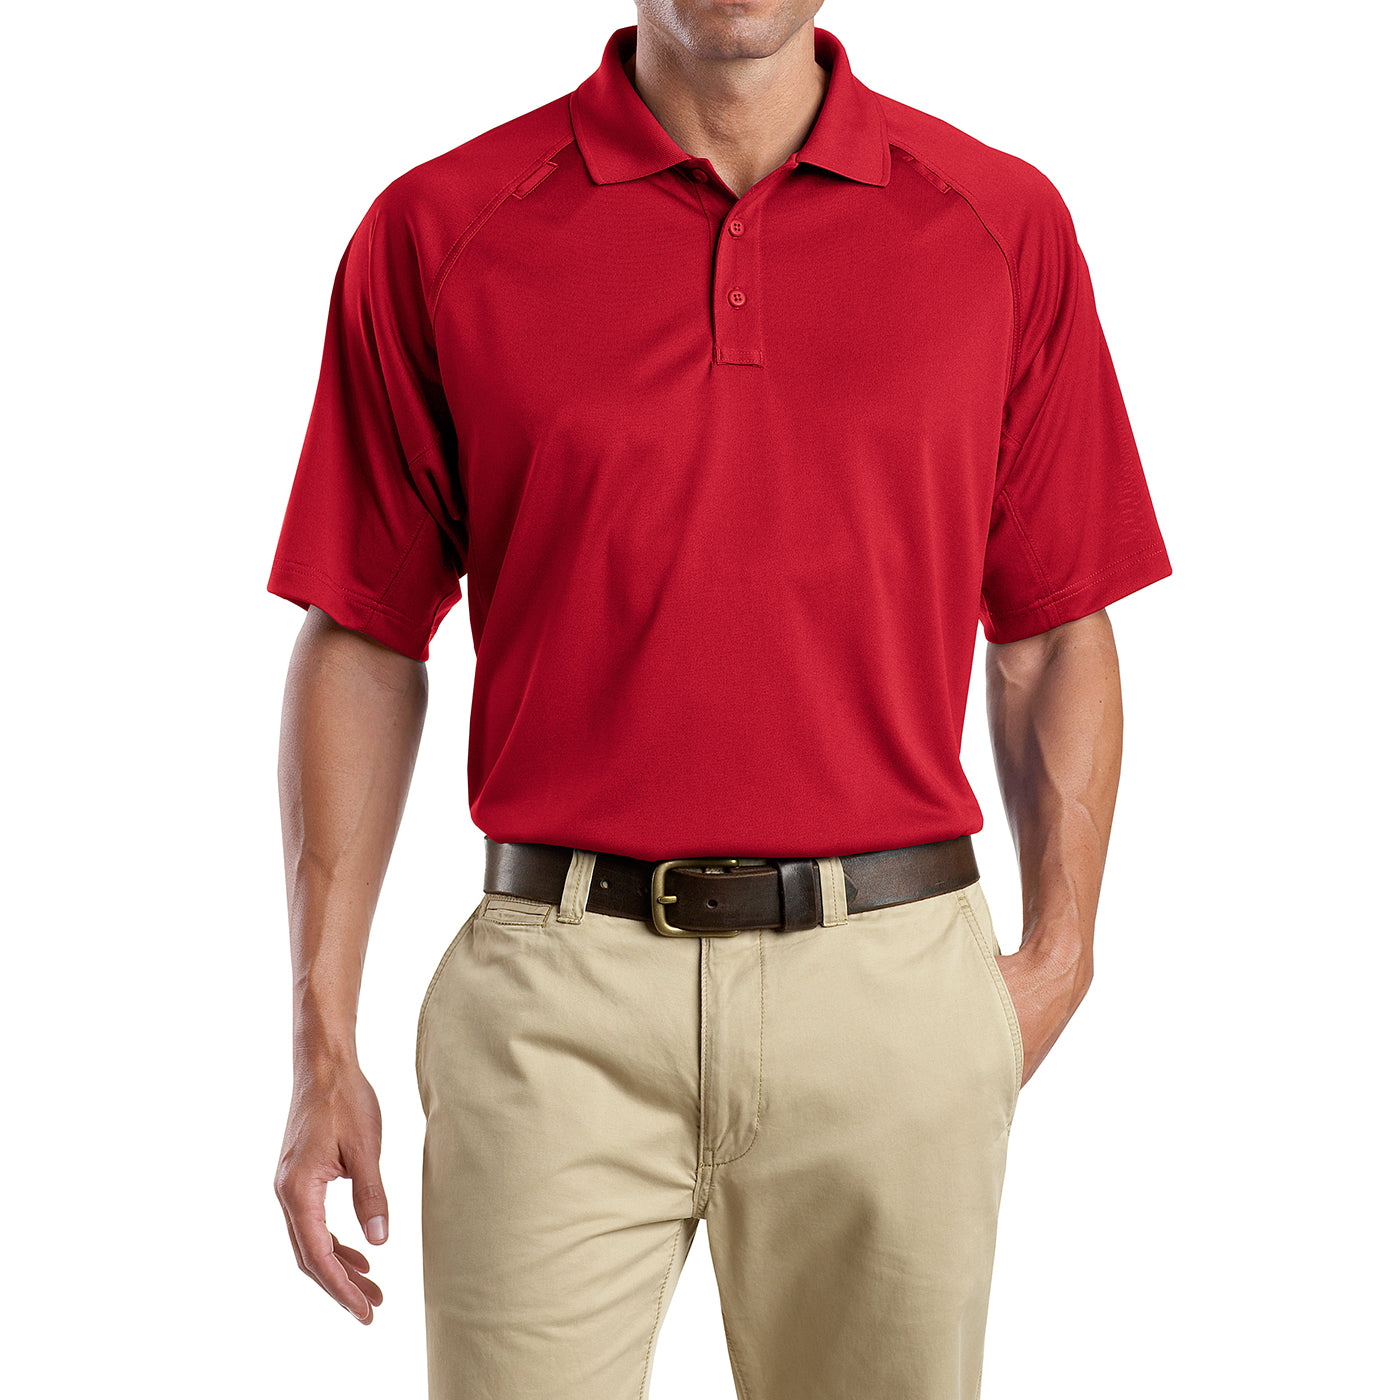 Men's Snag-Proof Tactical Polo Shirt - Red - Front